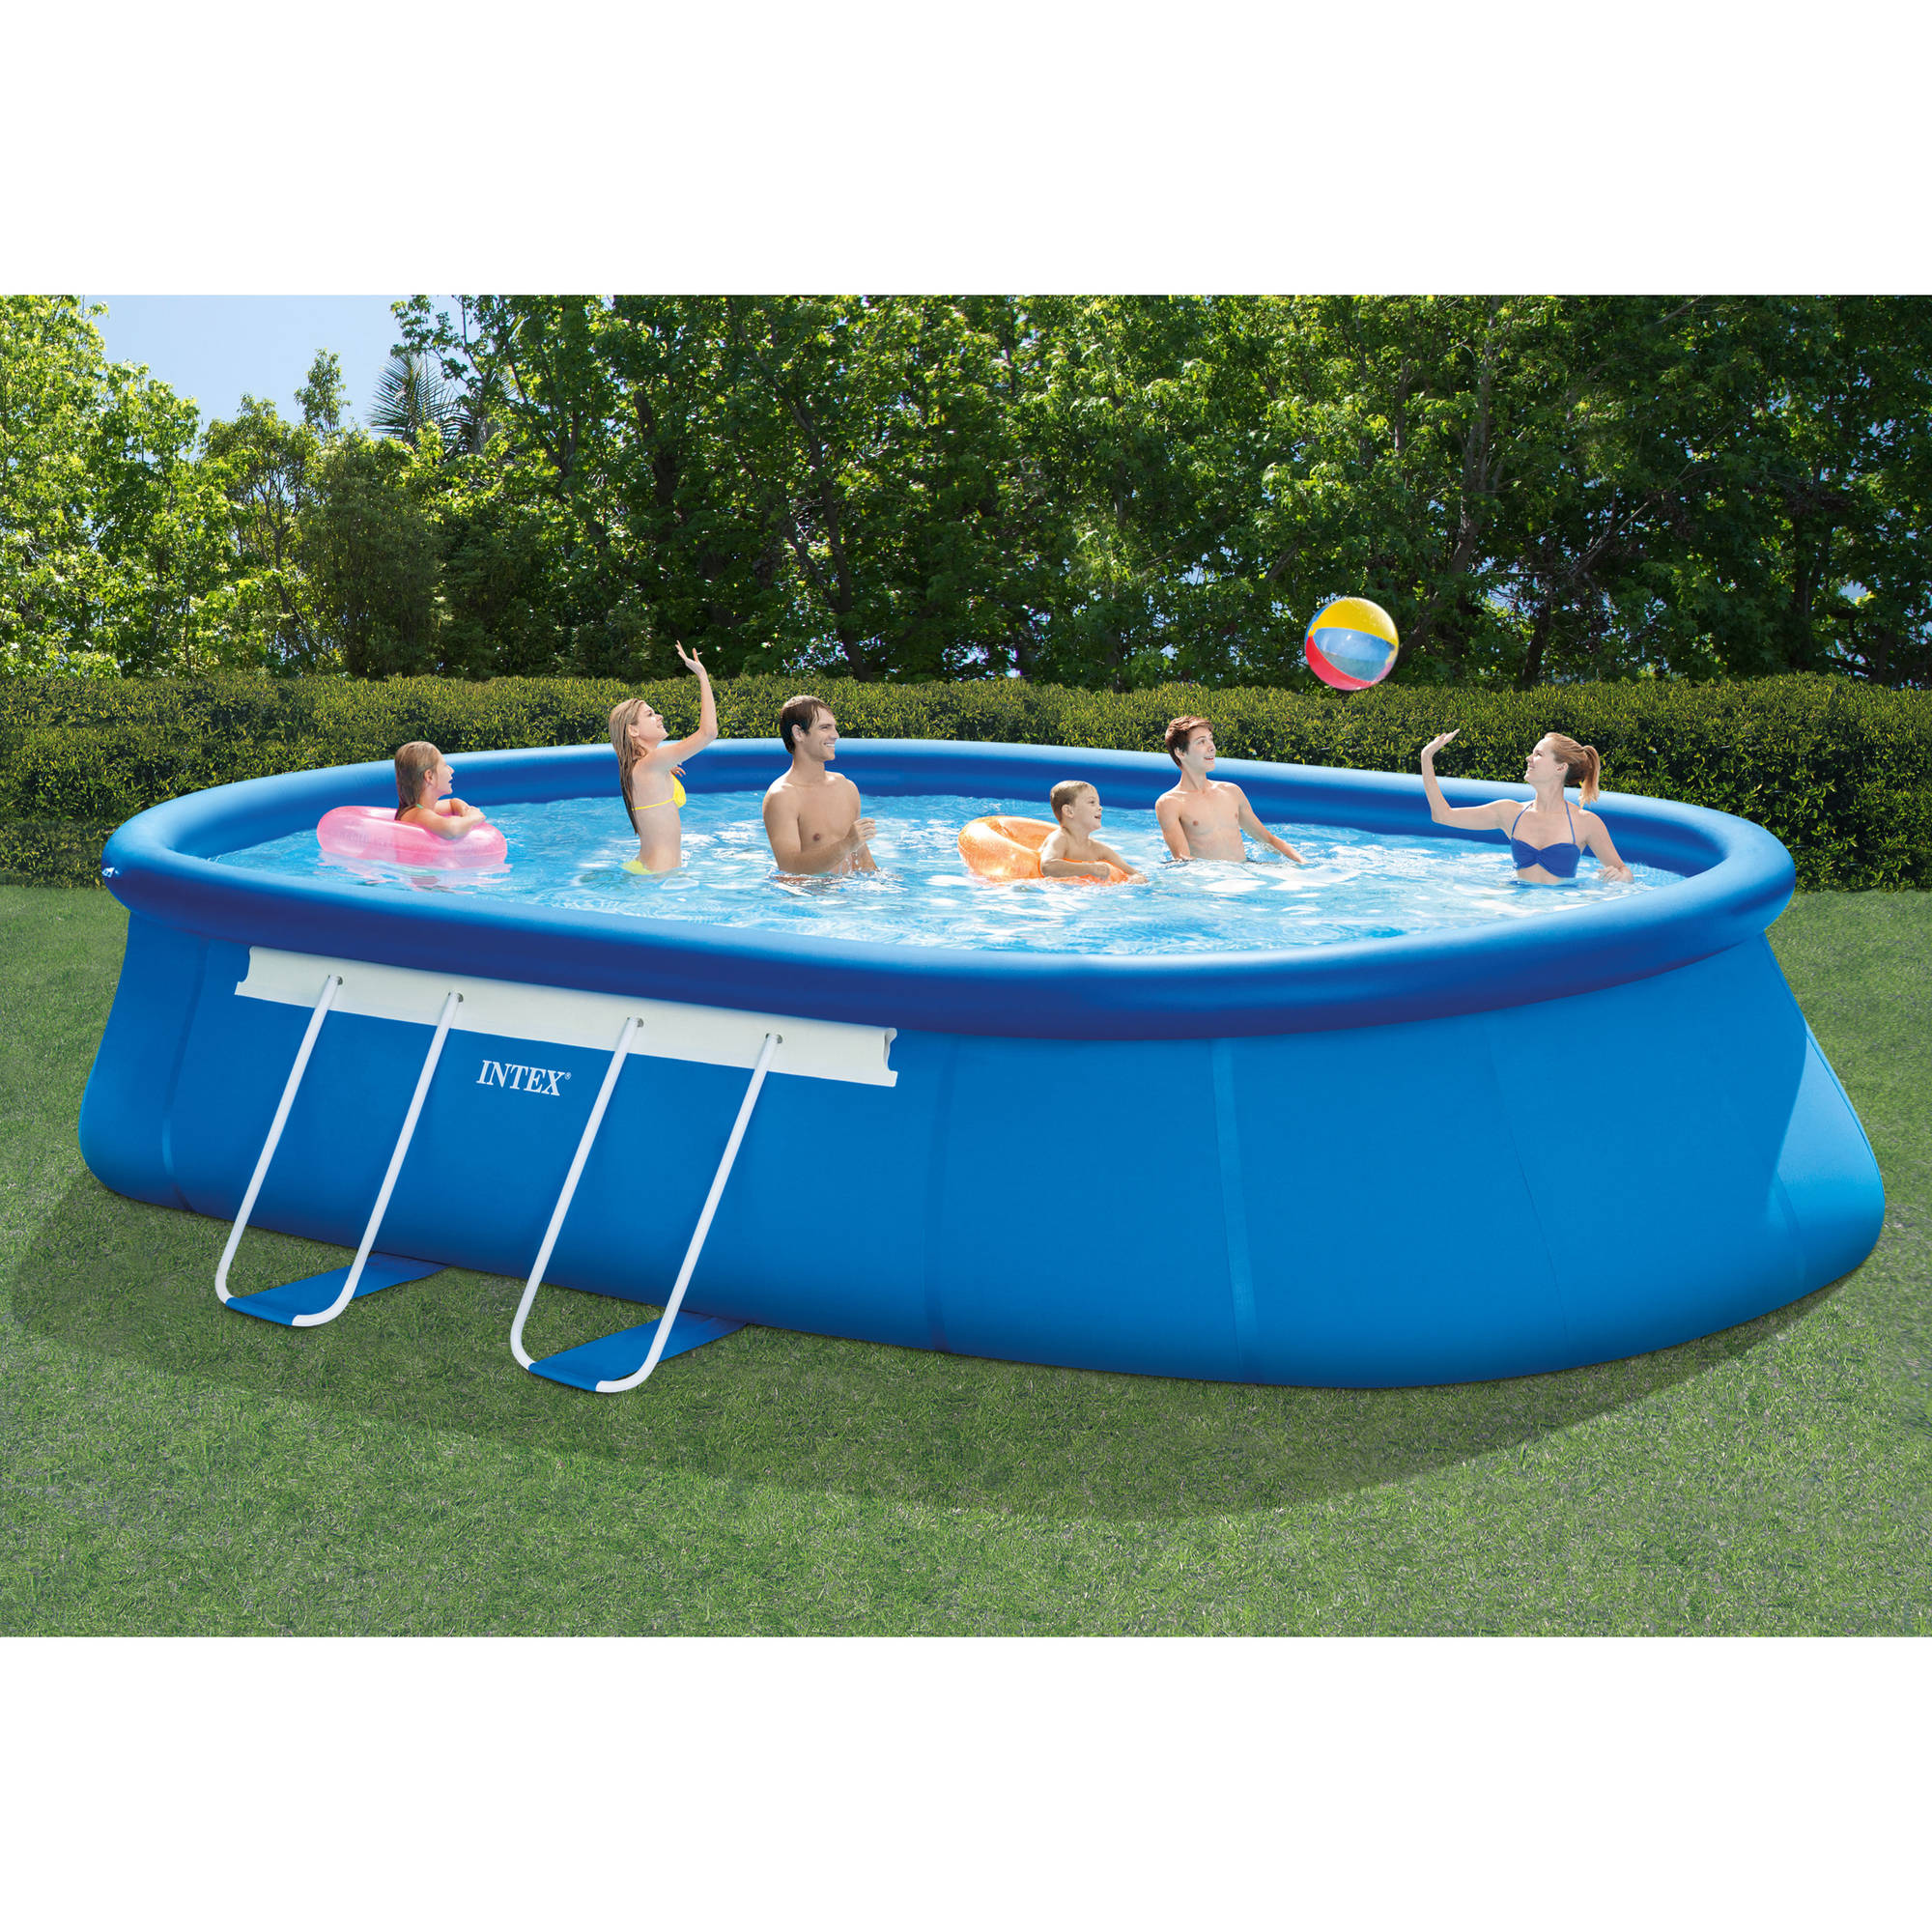 Intex 20 x 12 x 48 Oval Frame Above Ground Swimming Pool with